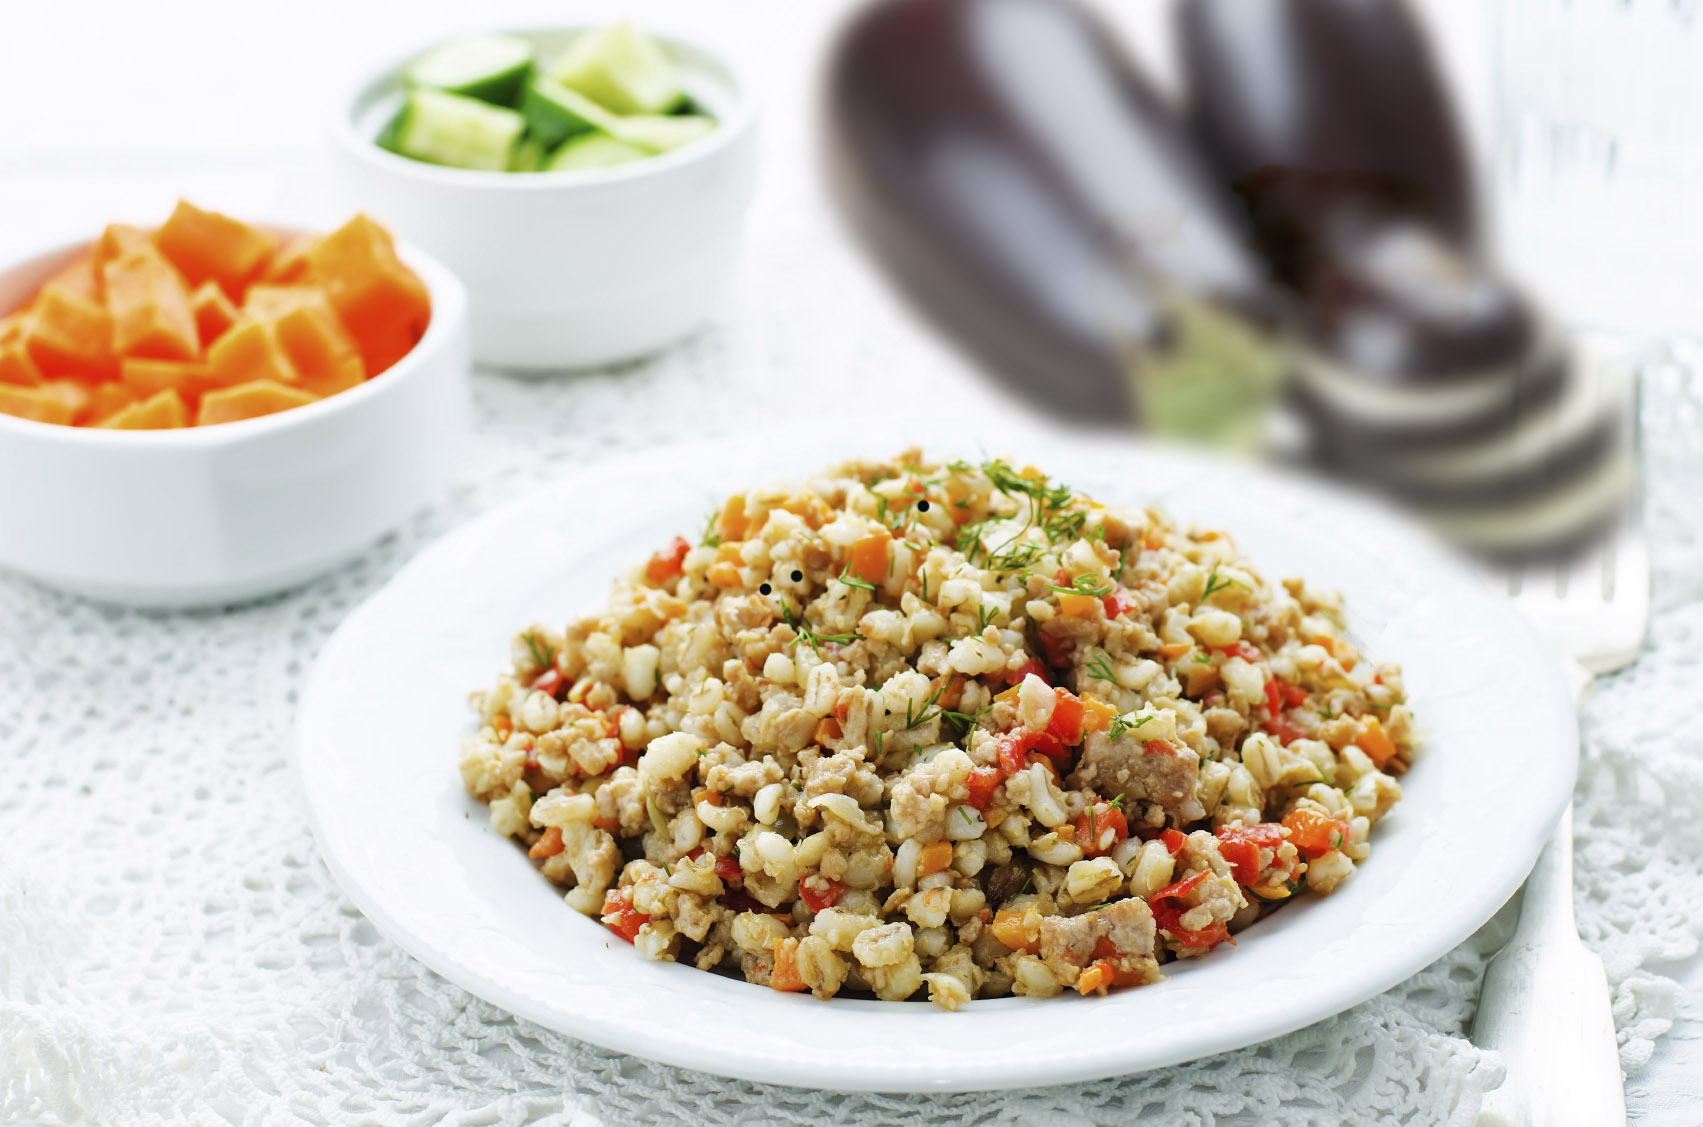 Aubergine with barley prepared